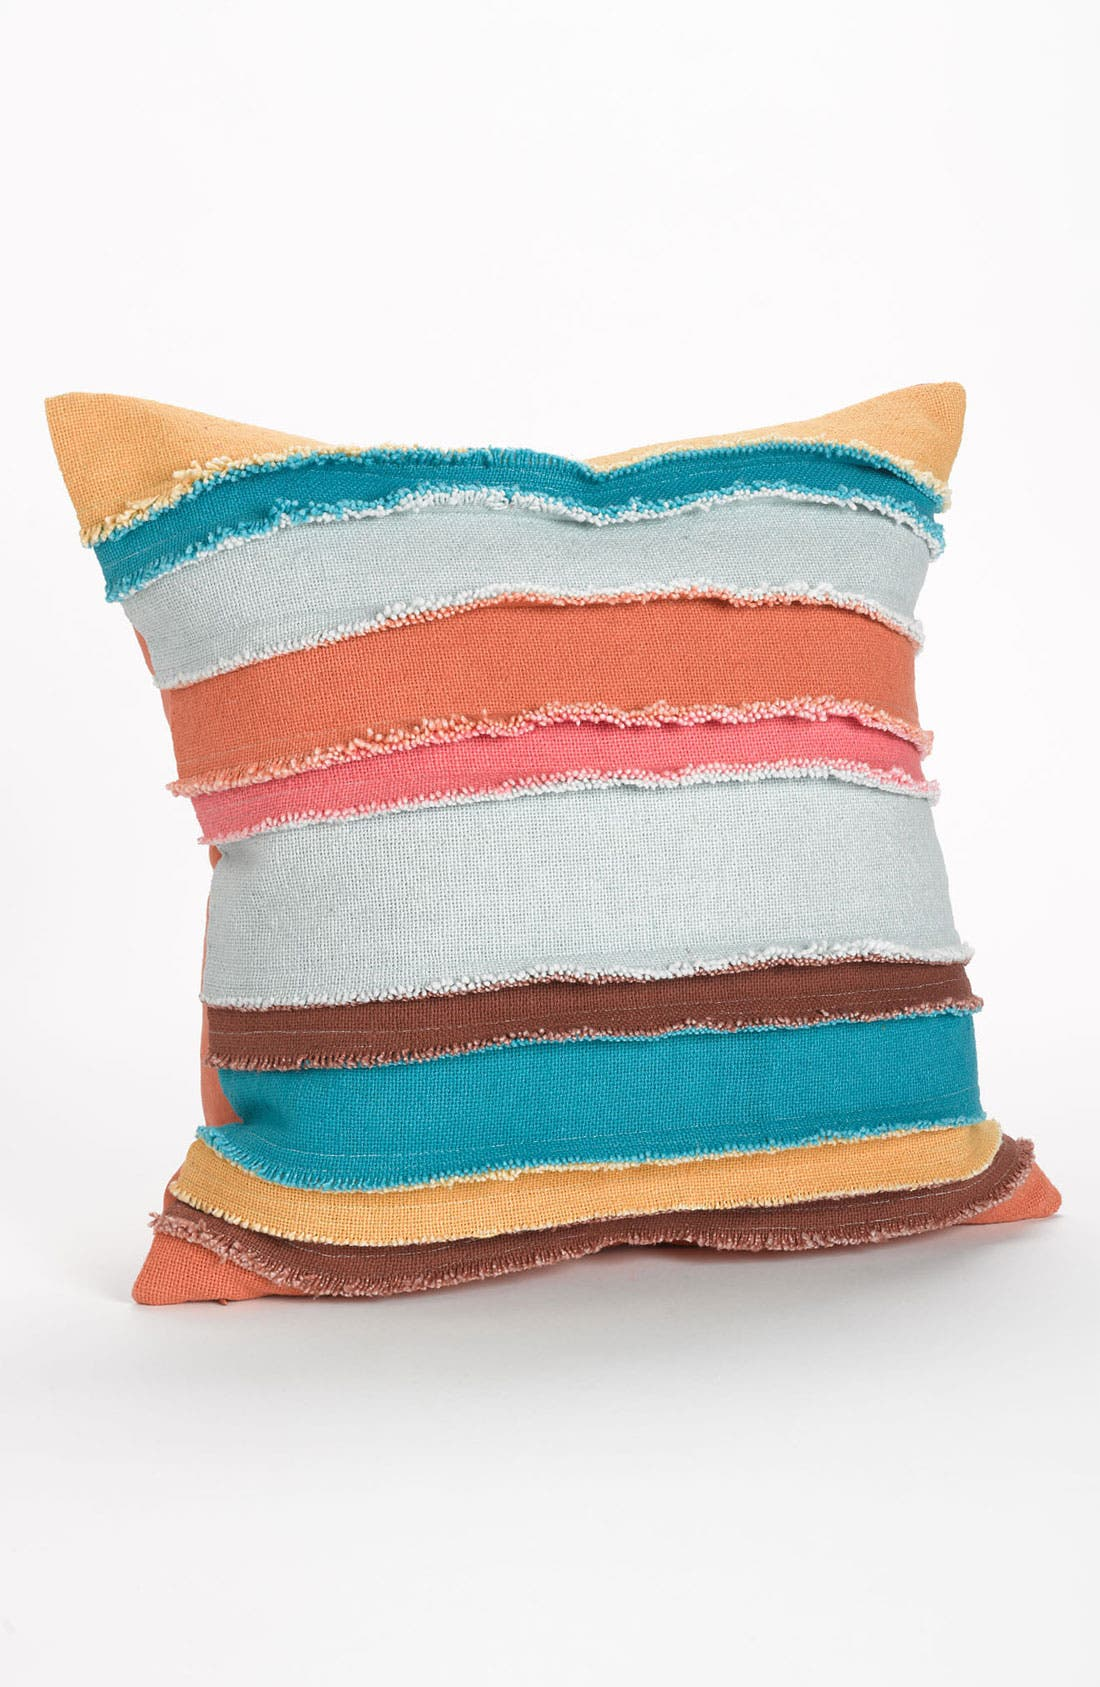 Alternate Image 1 Selected - Nordstrom at Home Patchwork Stripe Pillow Cover